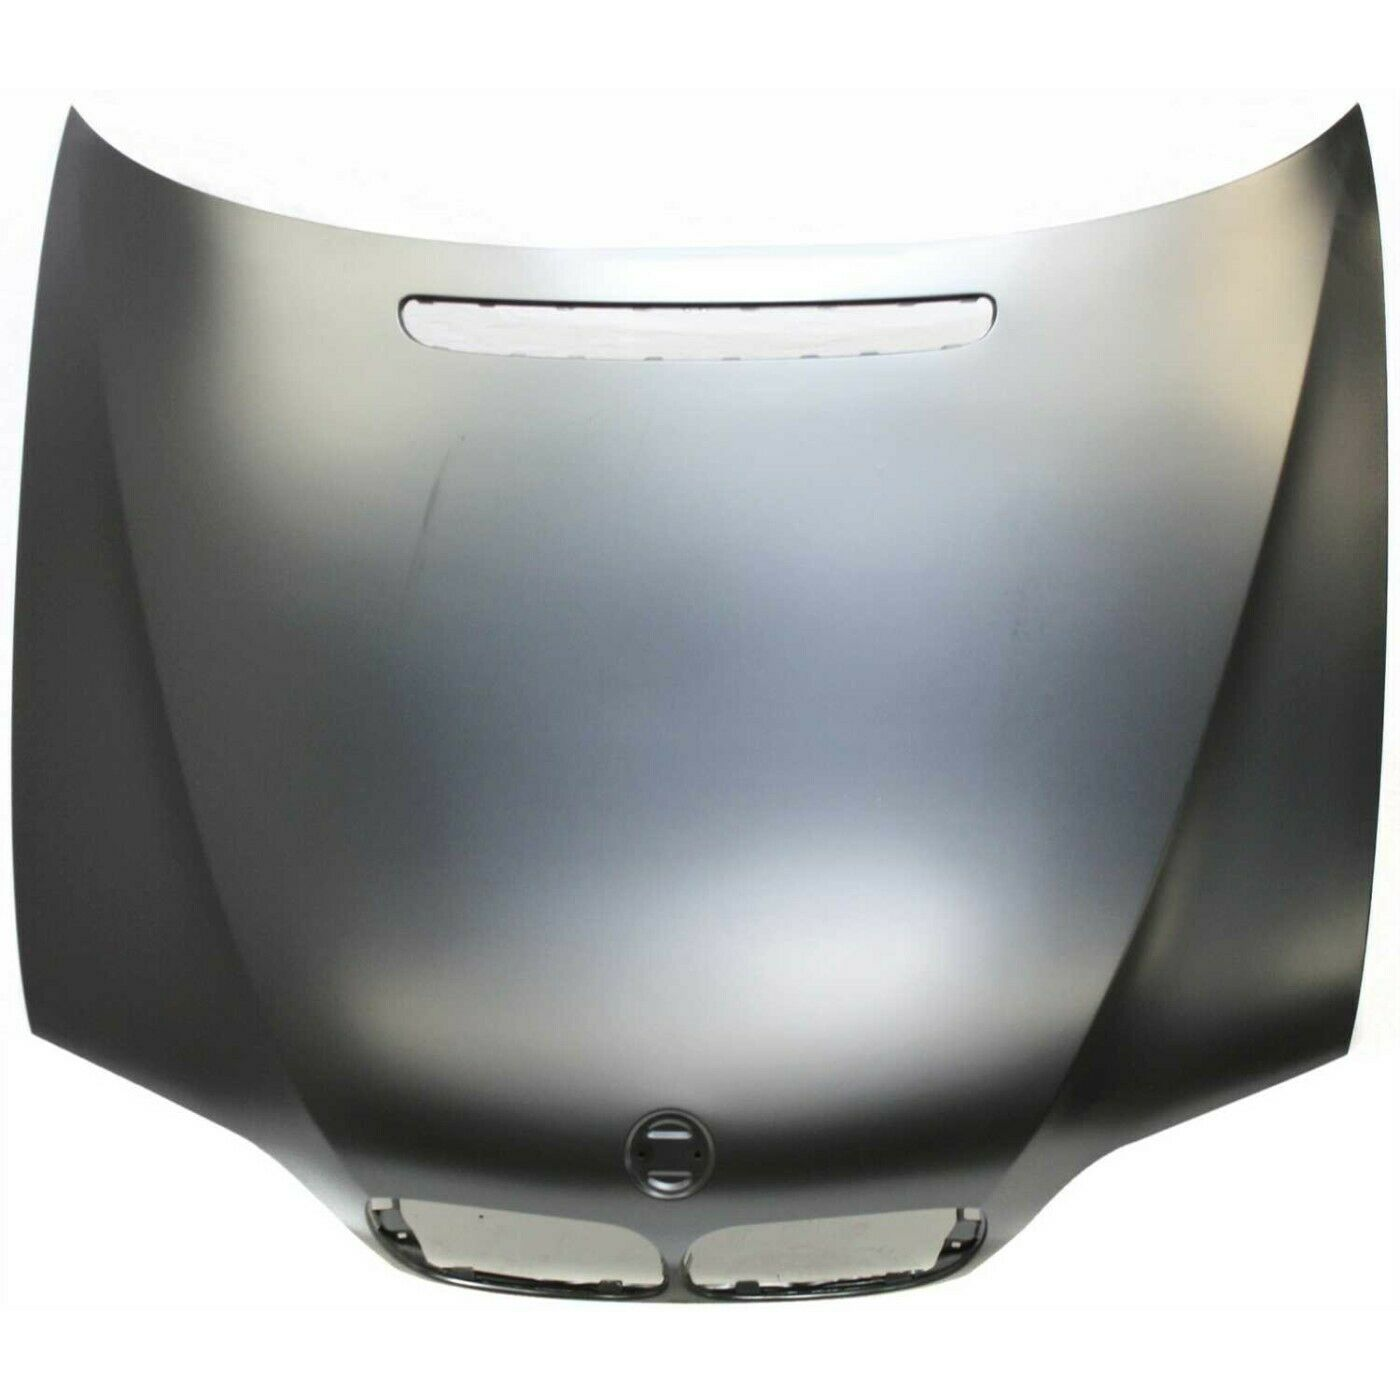 2002-2005 BMW 3-Series Sedan/Wagon Hood